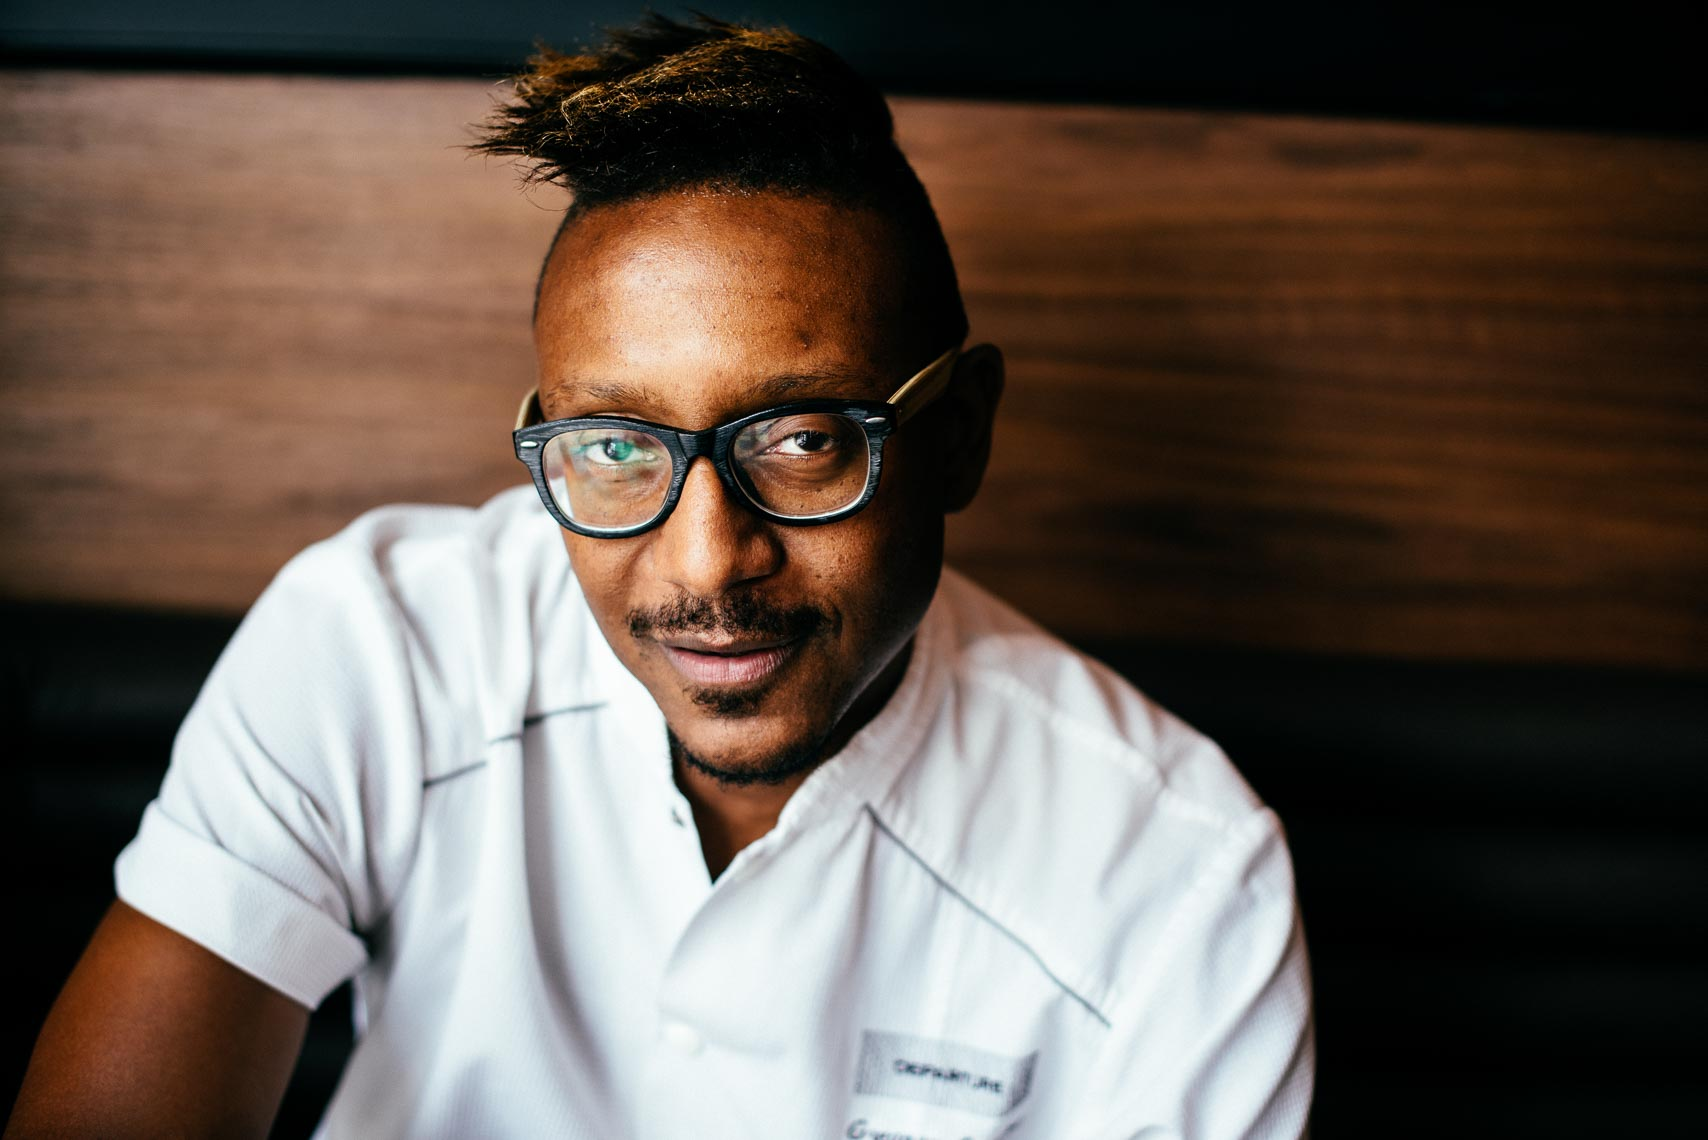 Chef Gregory Gourdet // Departure